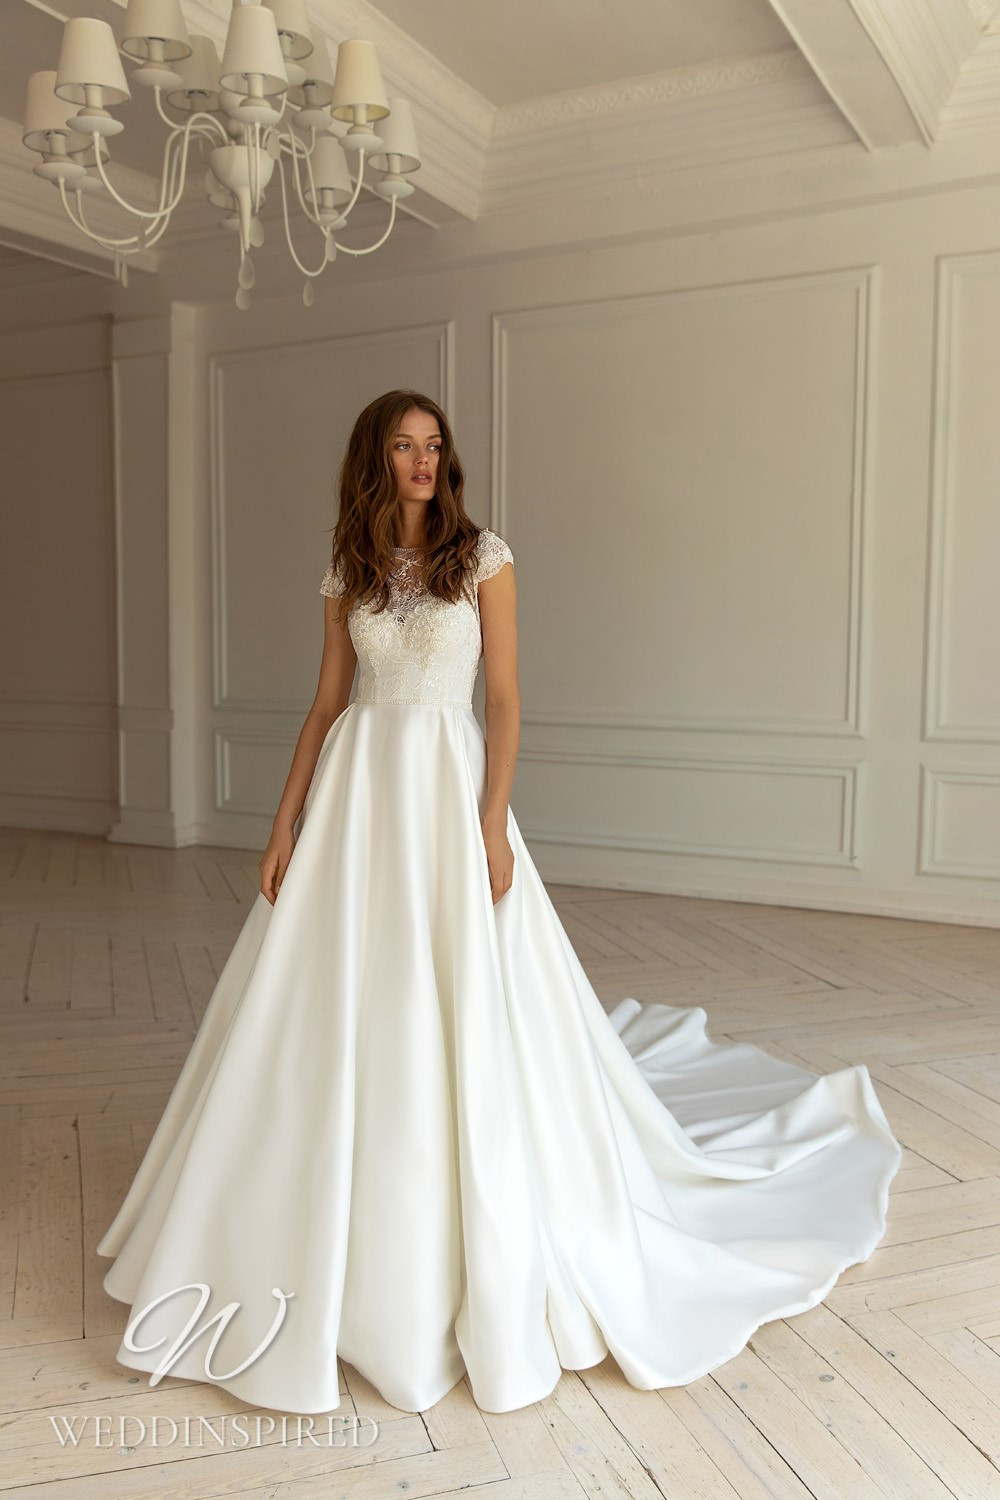 A WONÁ Concept 2021 lace and satin A-line wedding dress with cap sleeves